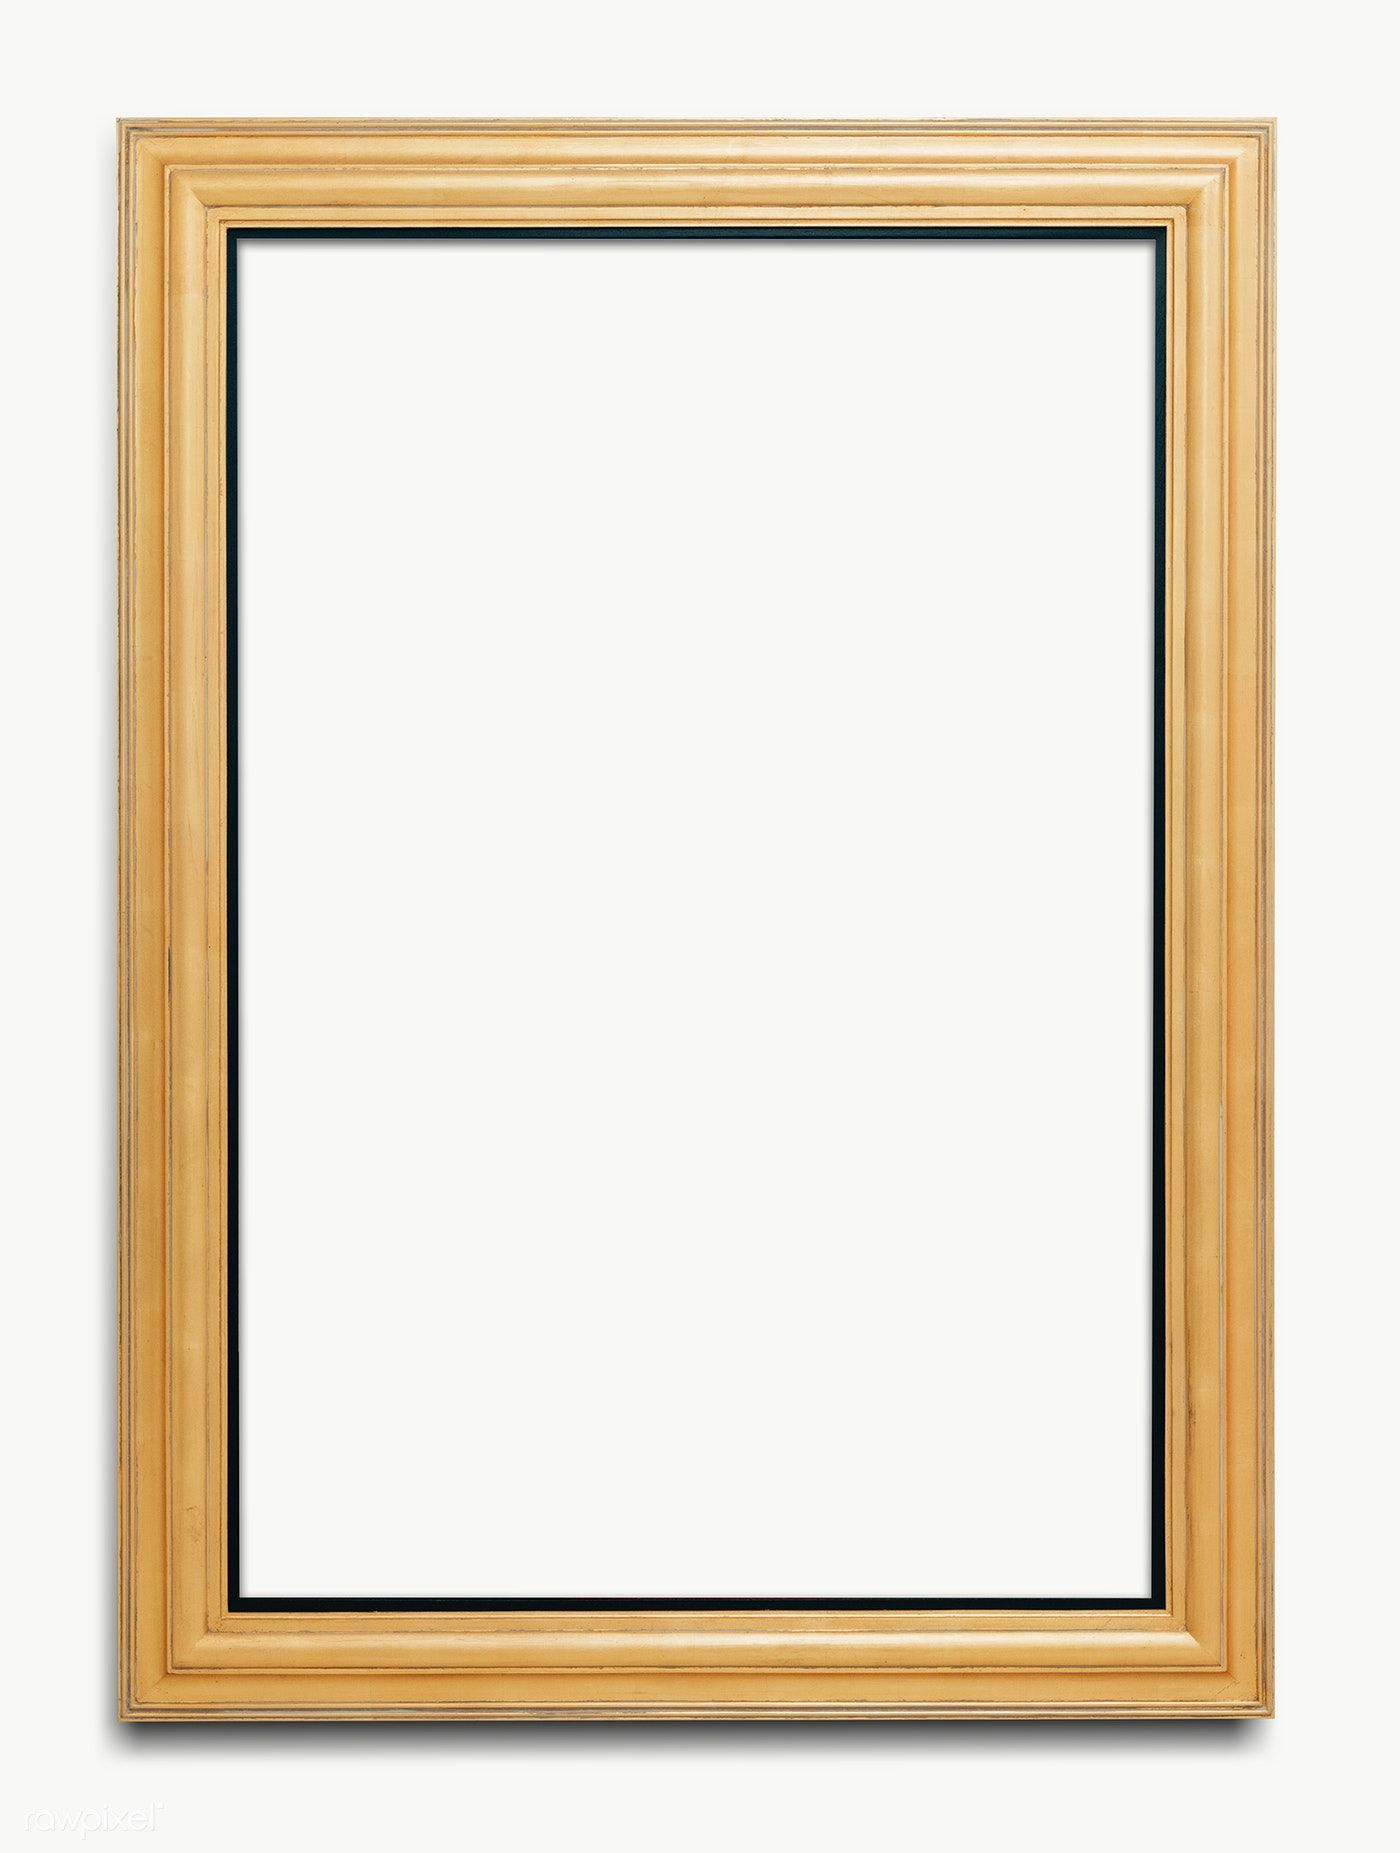 Download Premium Png Of Wooden Picture Frame Mockup Transparent Png 1230761 Frame Mockups Wooden Picture Wooden Photo Frames